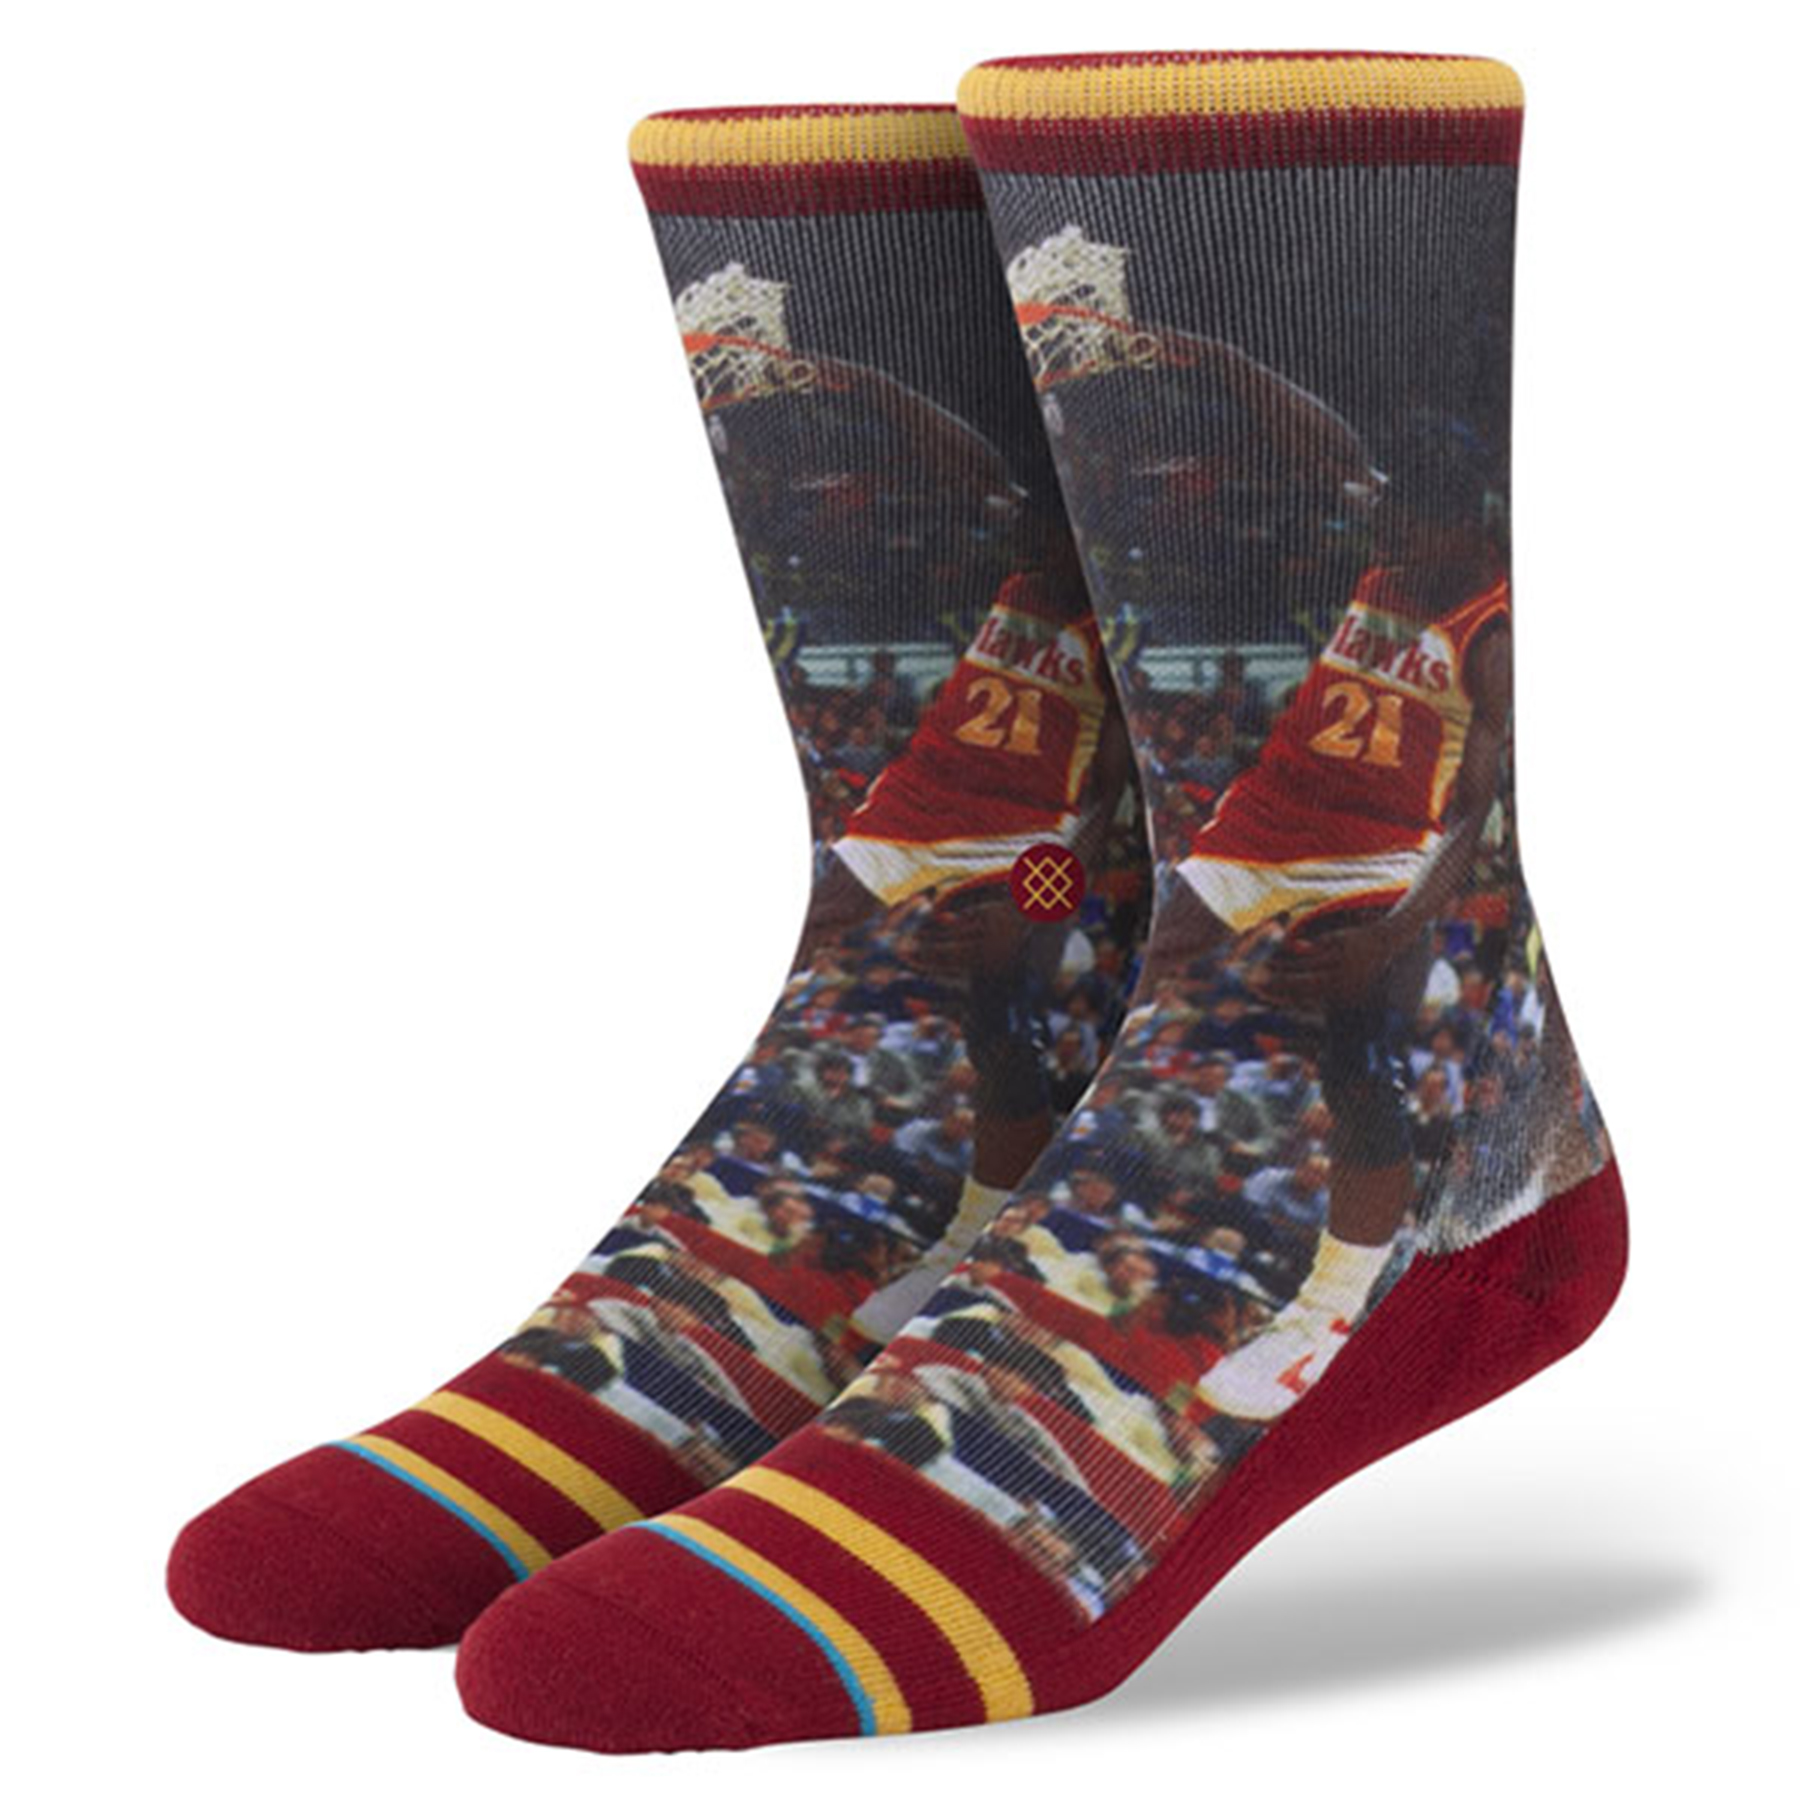 Atlanta Hawks Stance Hardwood Classics Player Socks - Dominique Wilkin